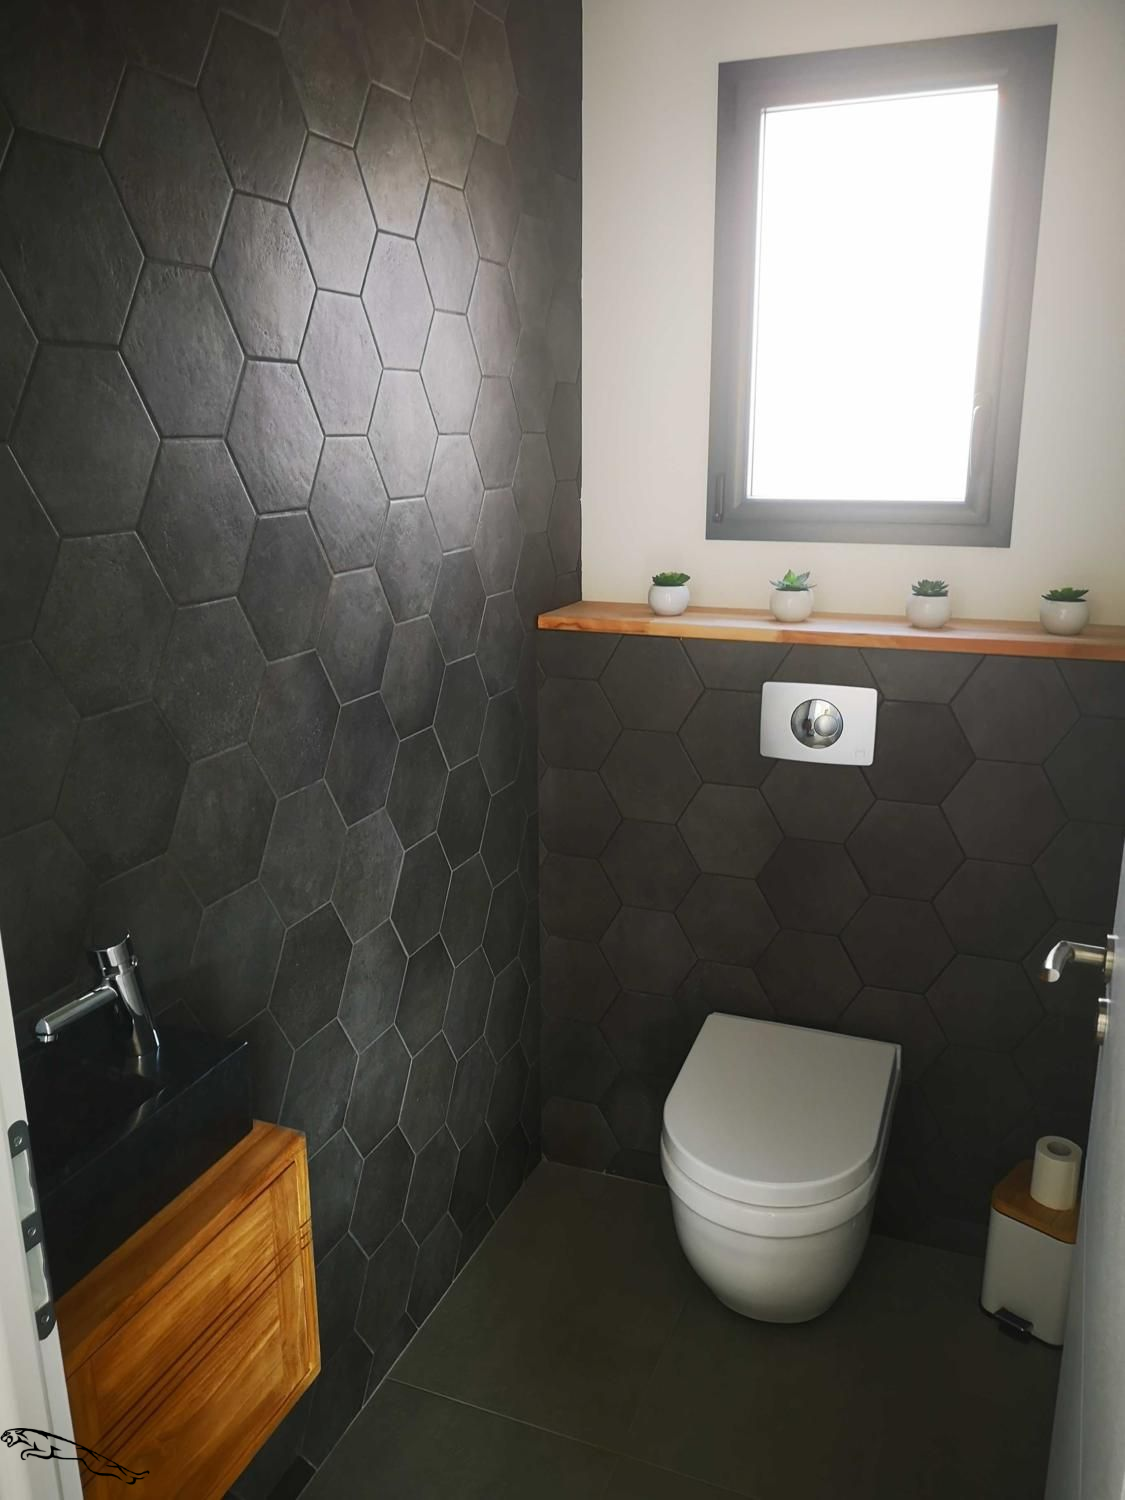 Wc Moderne Carrelage Noir Badezimmerdiyideen In 2020 With Images Wc Design Toilet Design Modern Toilet Design